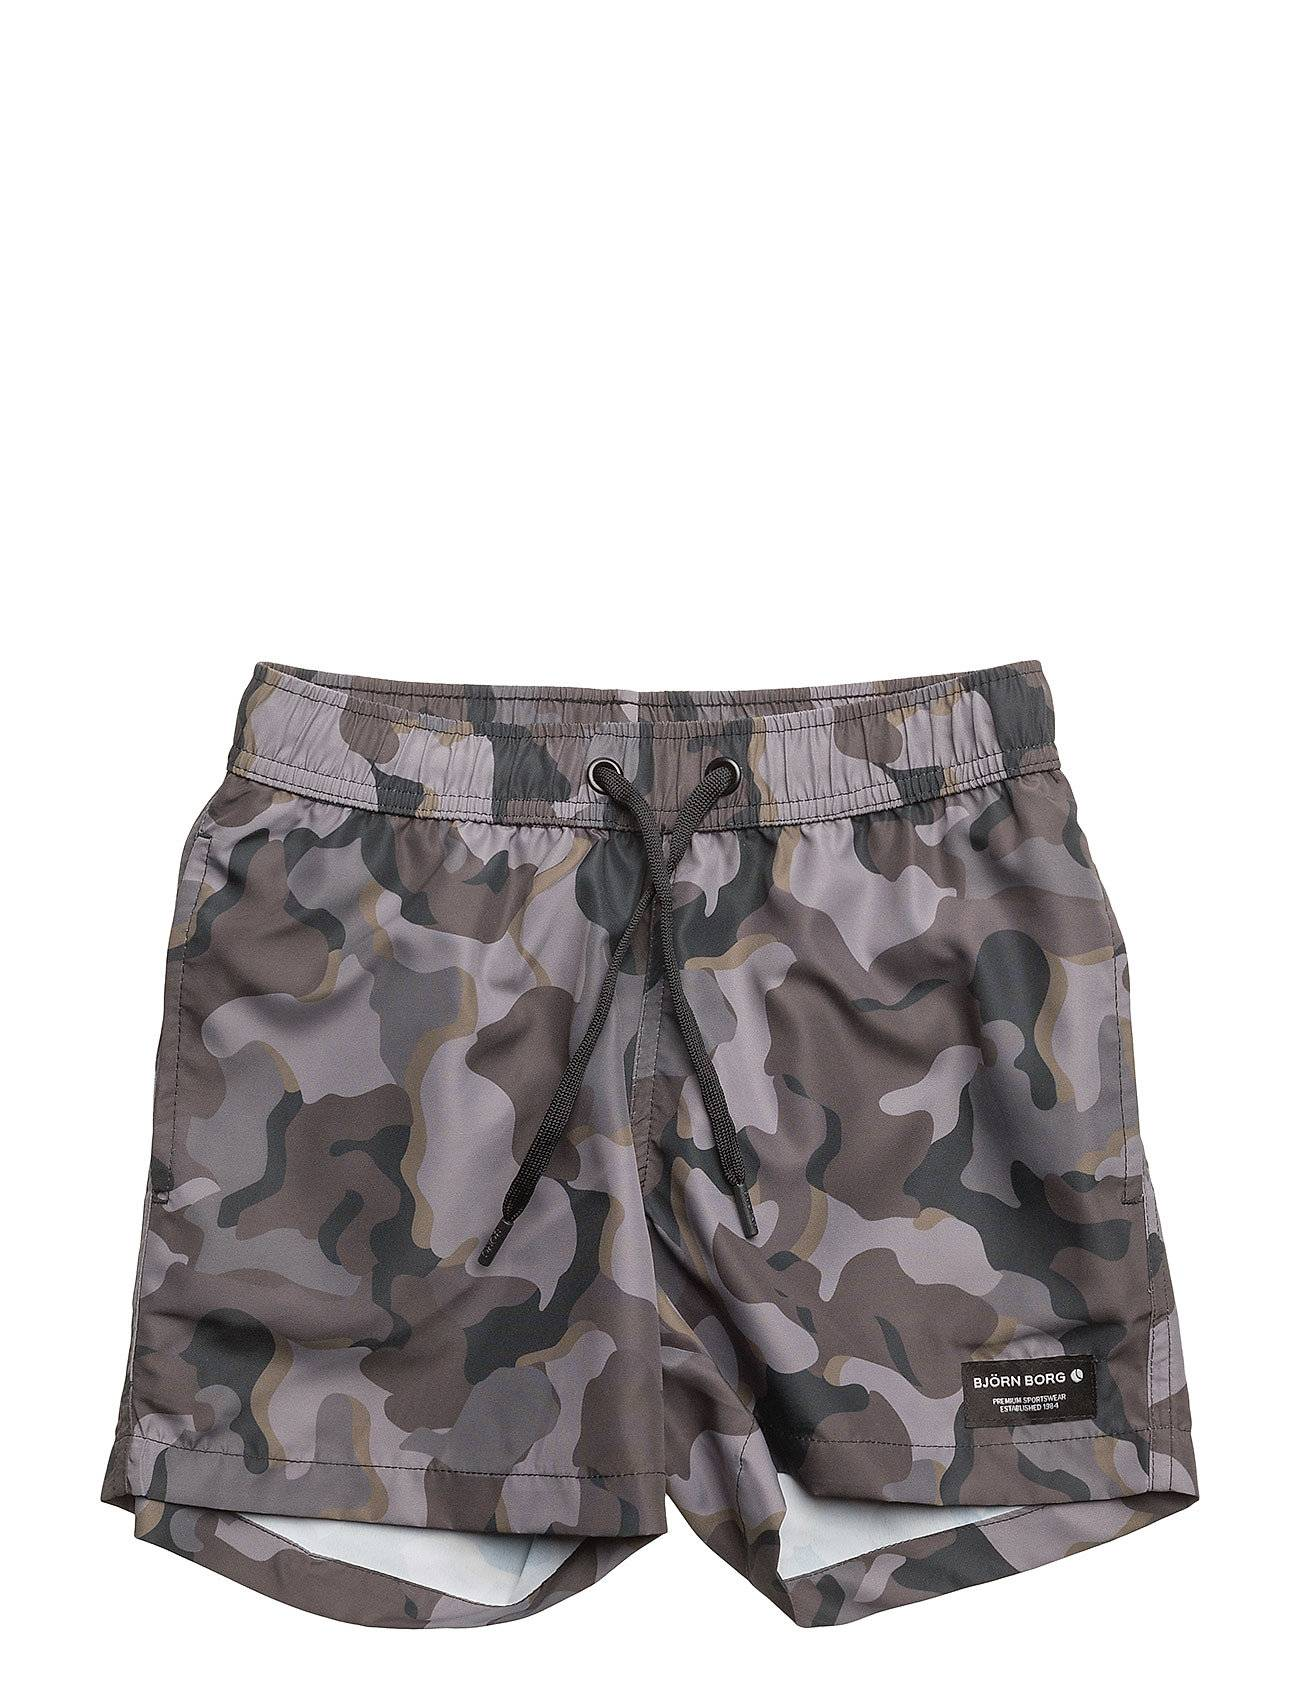 Björn Borg 1p Loose Shorts Kenny Loose Shorts